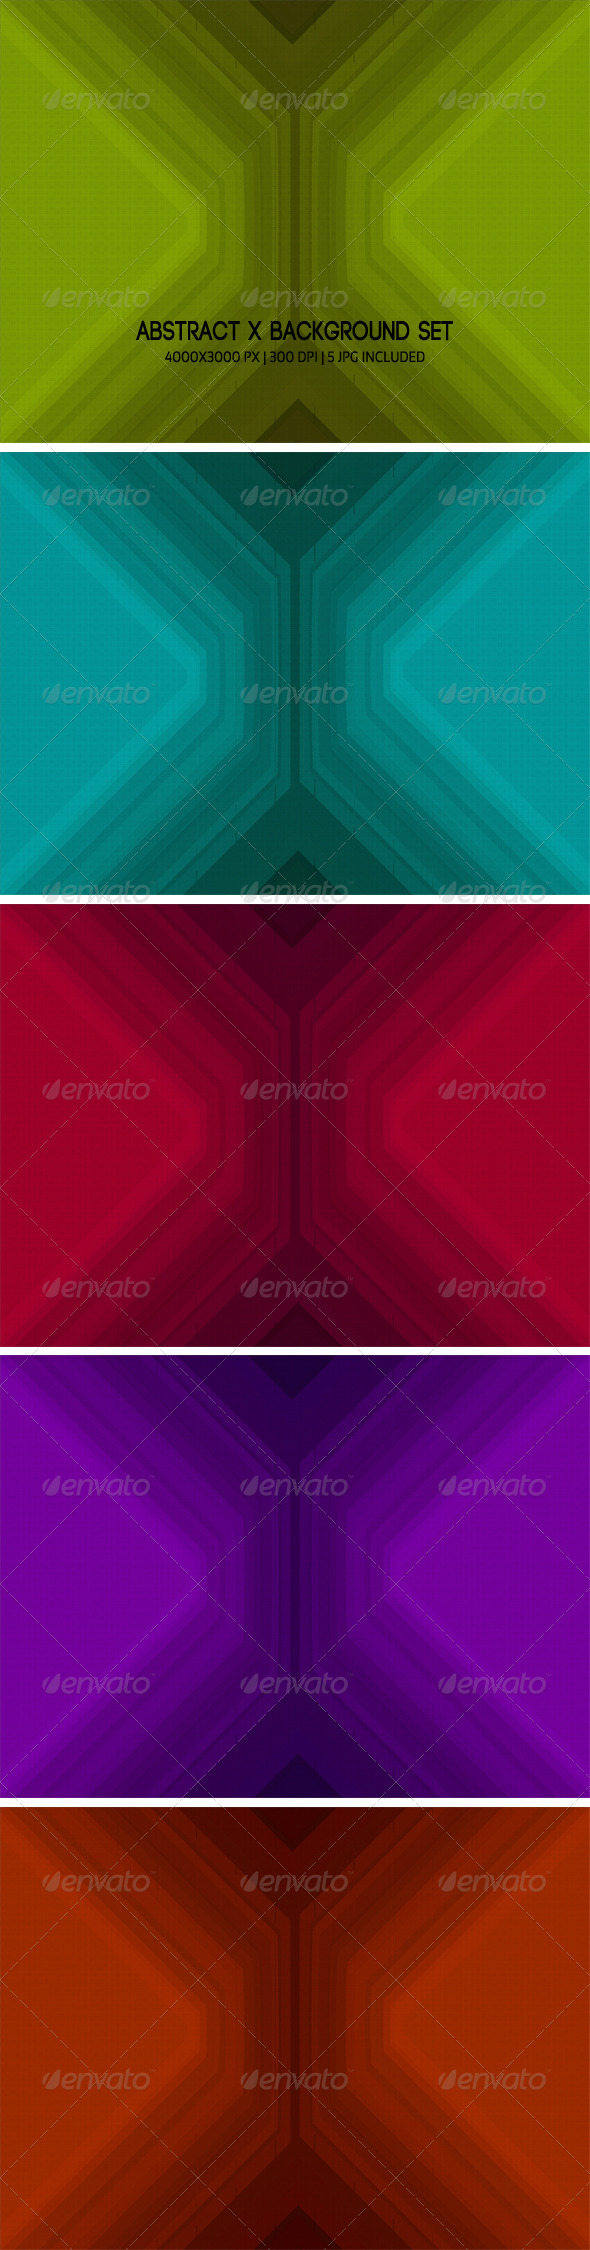 GraphicRiver Abstract X Background Set 5117837